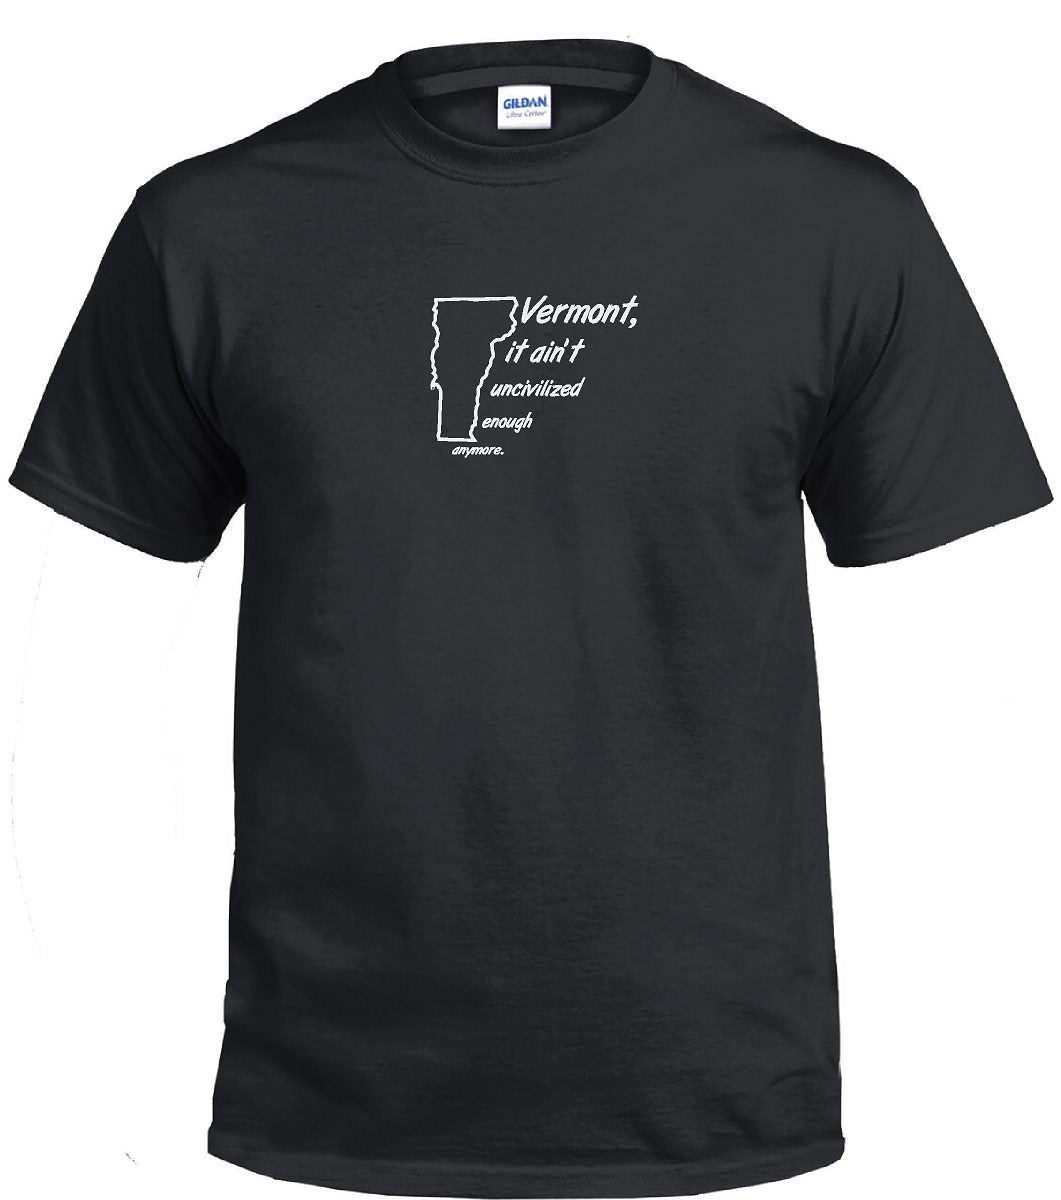 VERMONT it ain't uncivilized enough anymore Tee